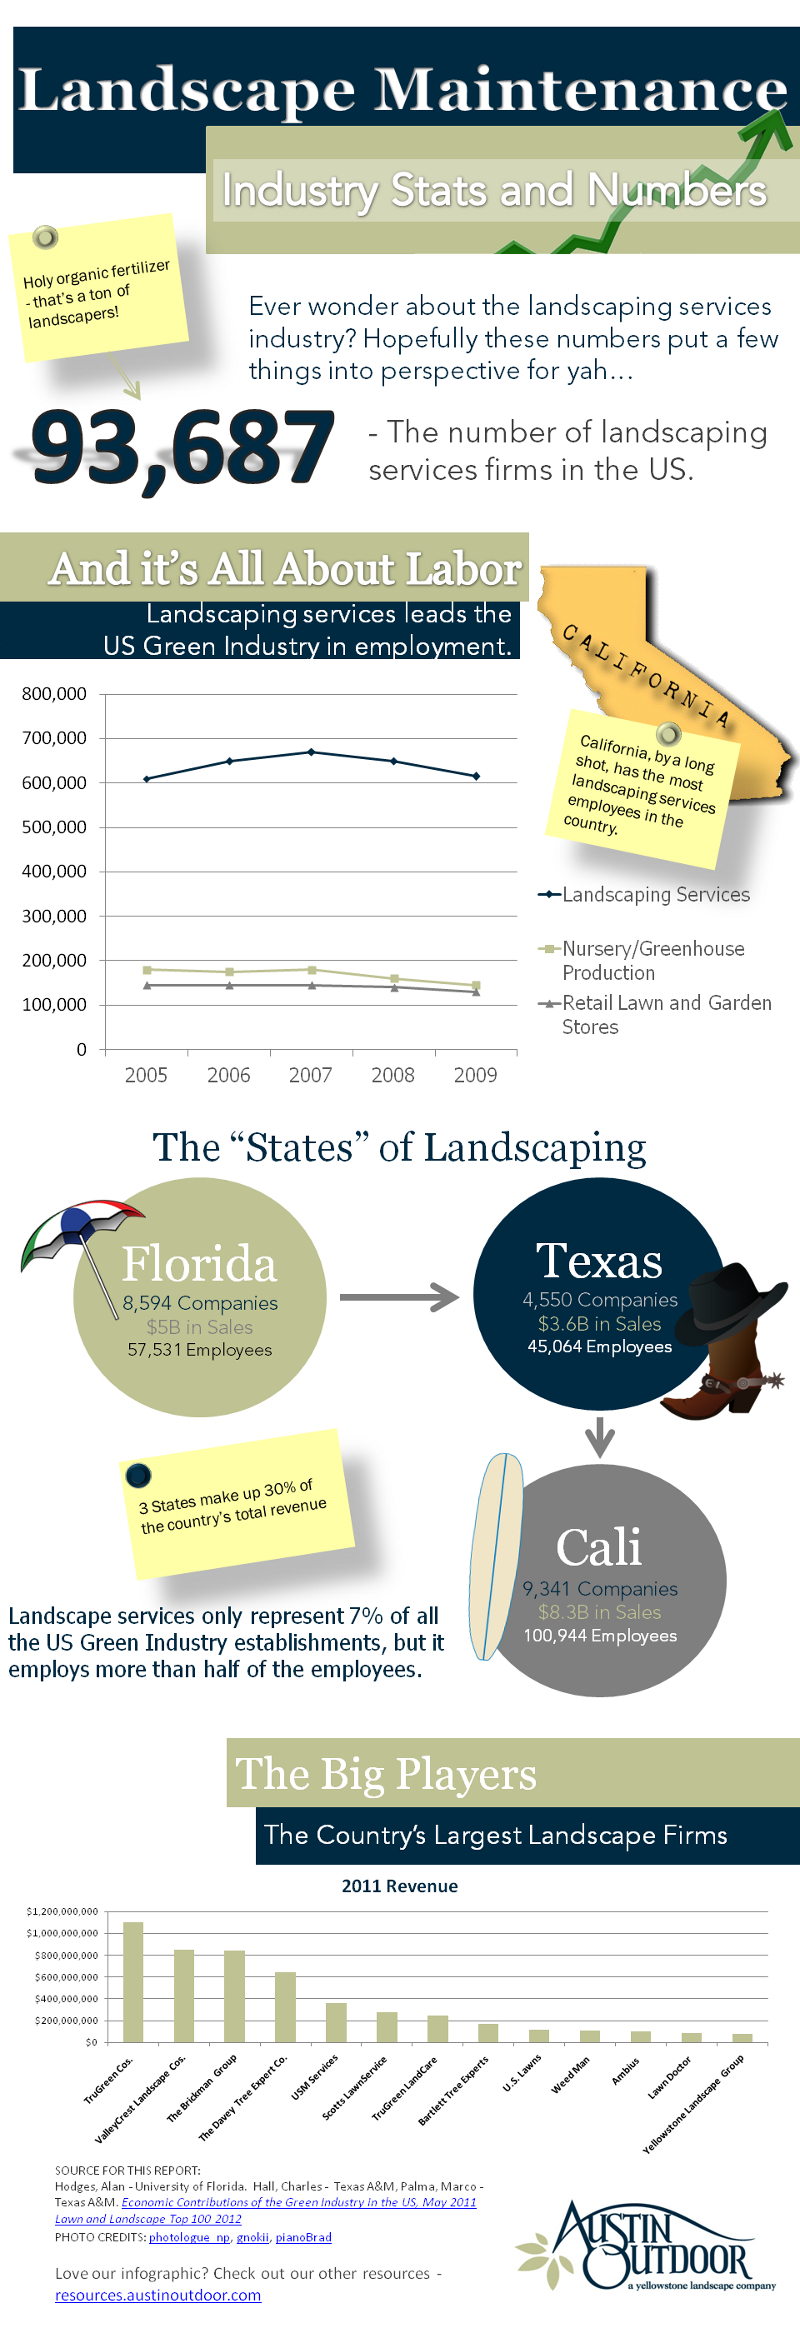 Landscaping Industry Statistitics and Trends